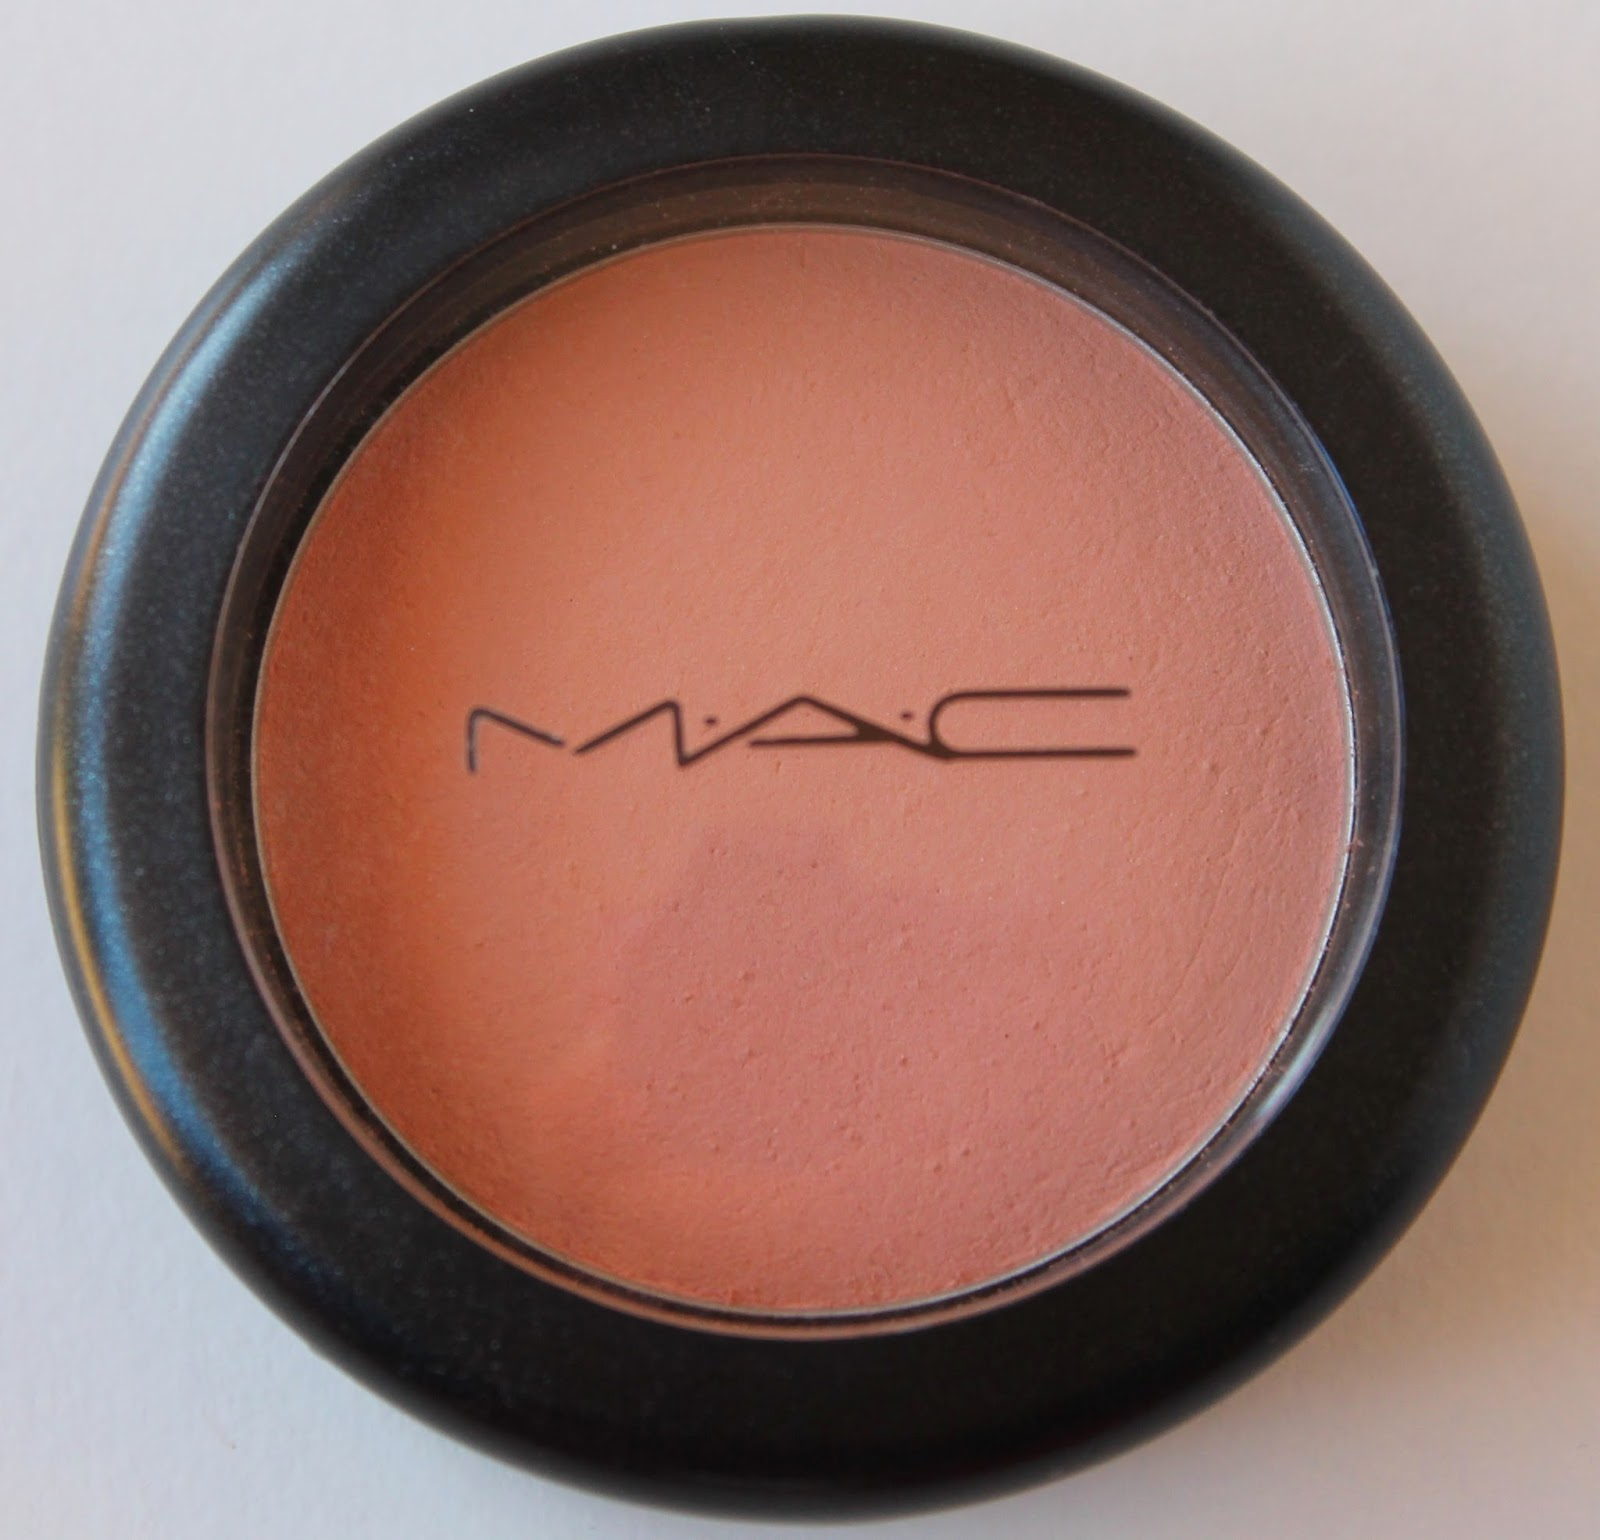 MAC Blush Stay by me